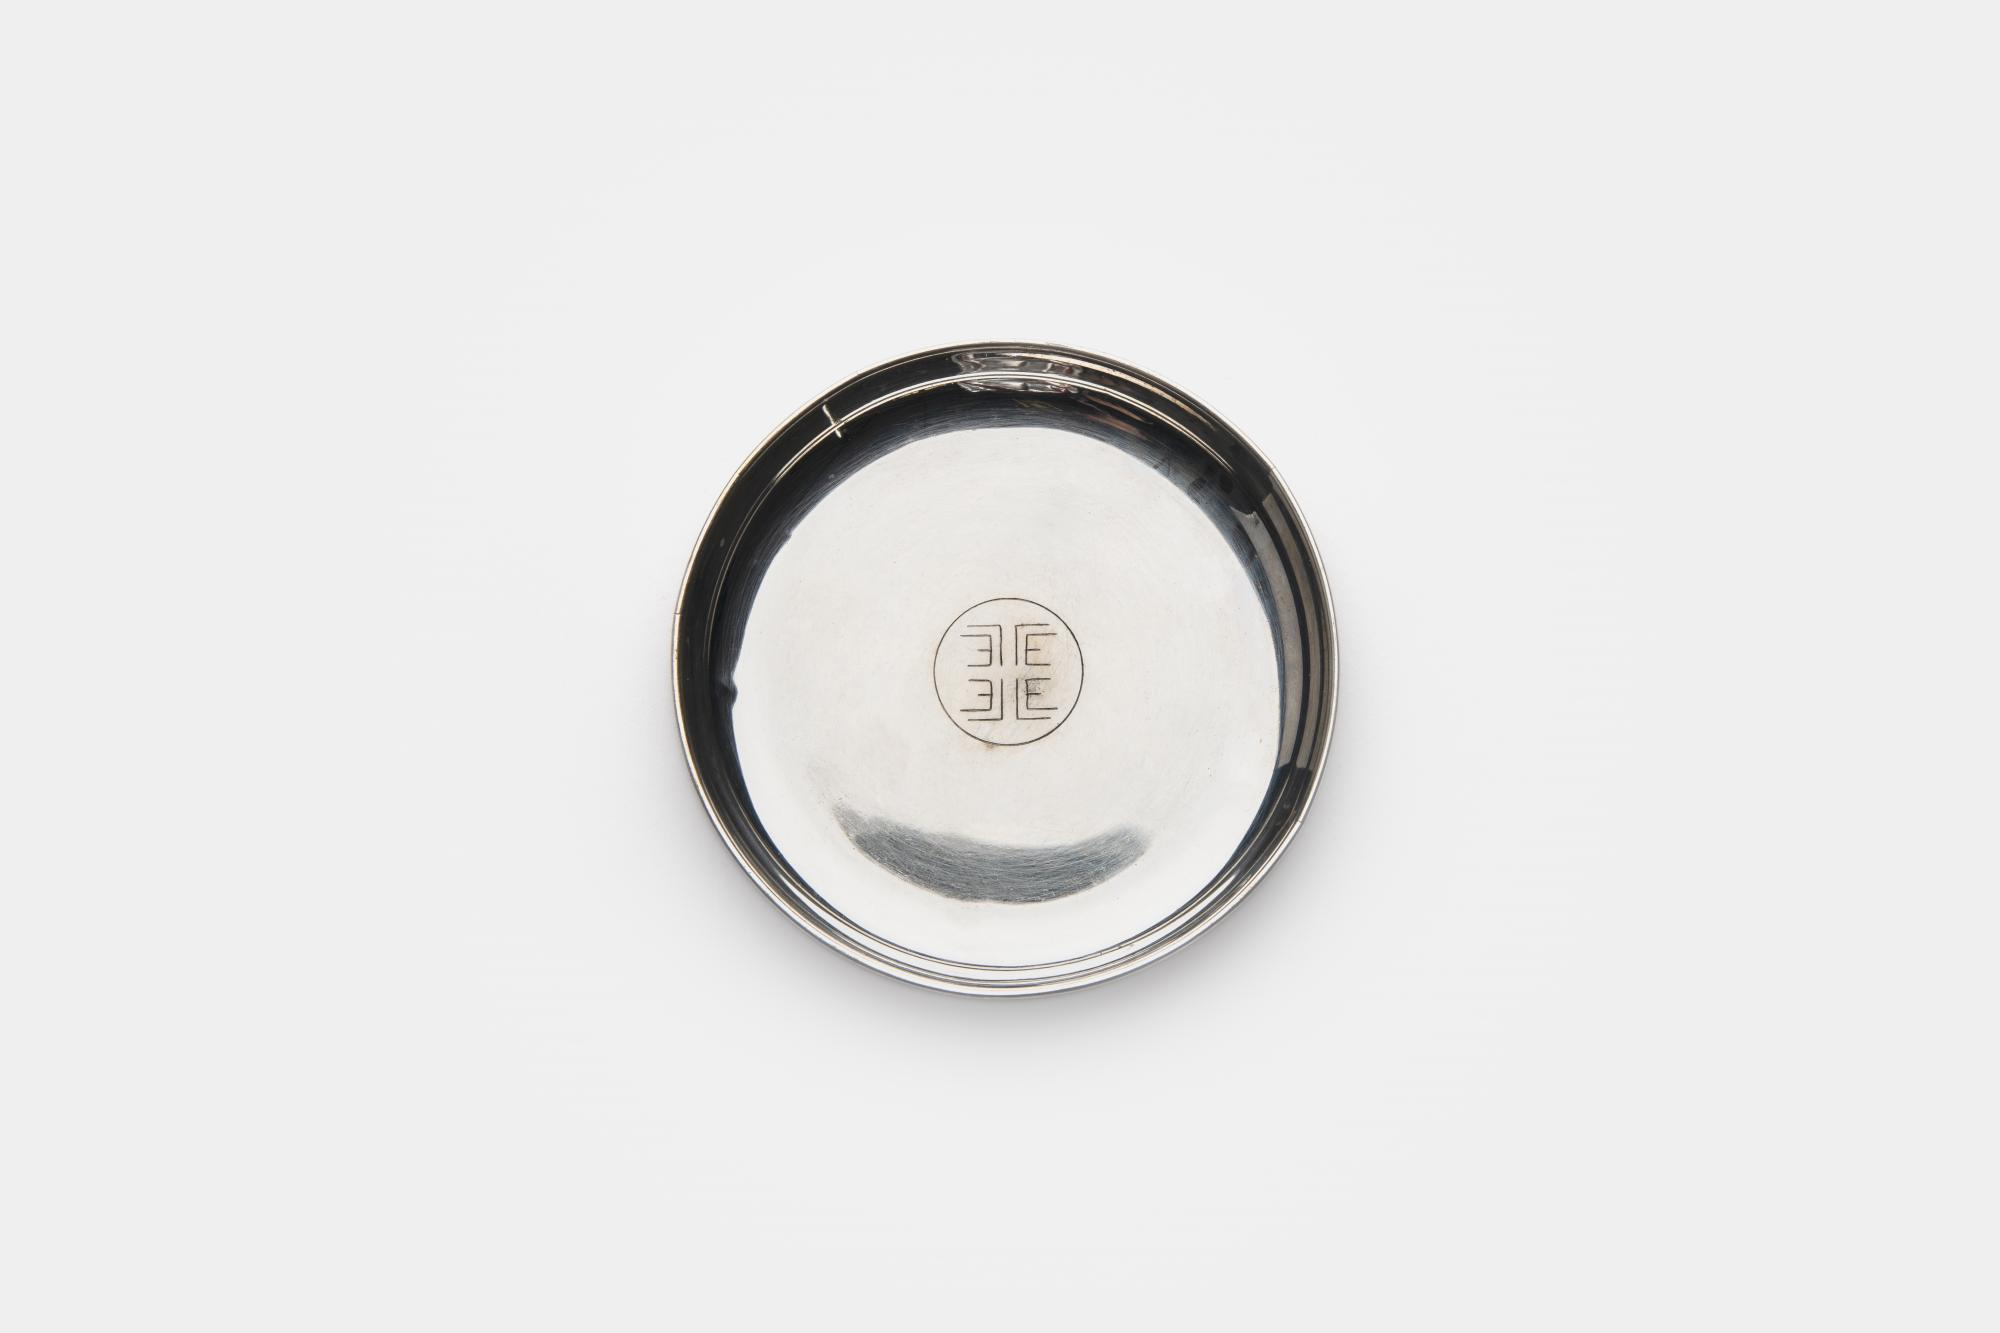 Silver BB plate - Image 1